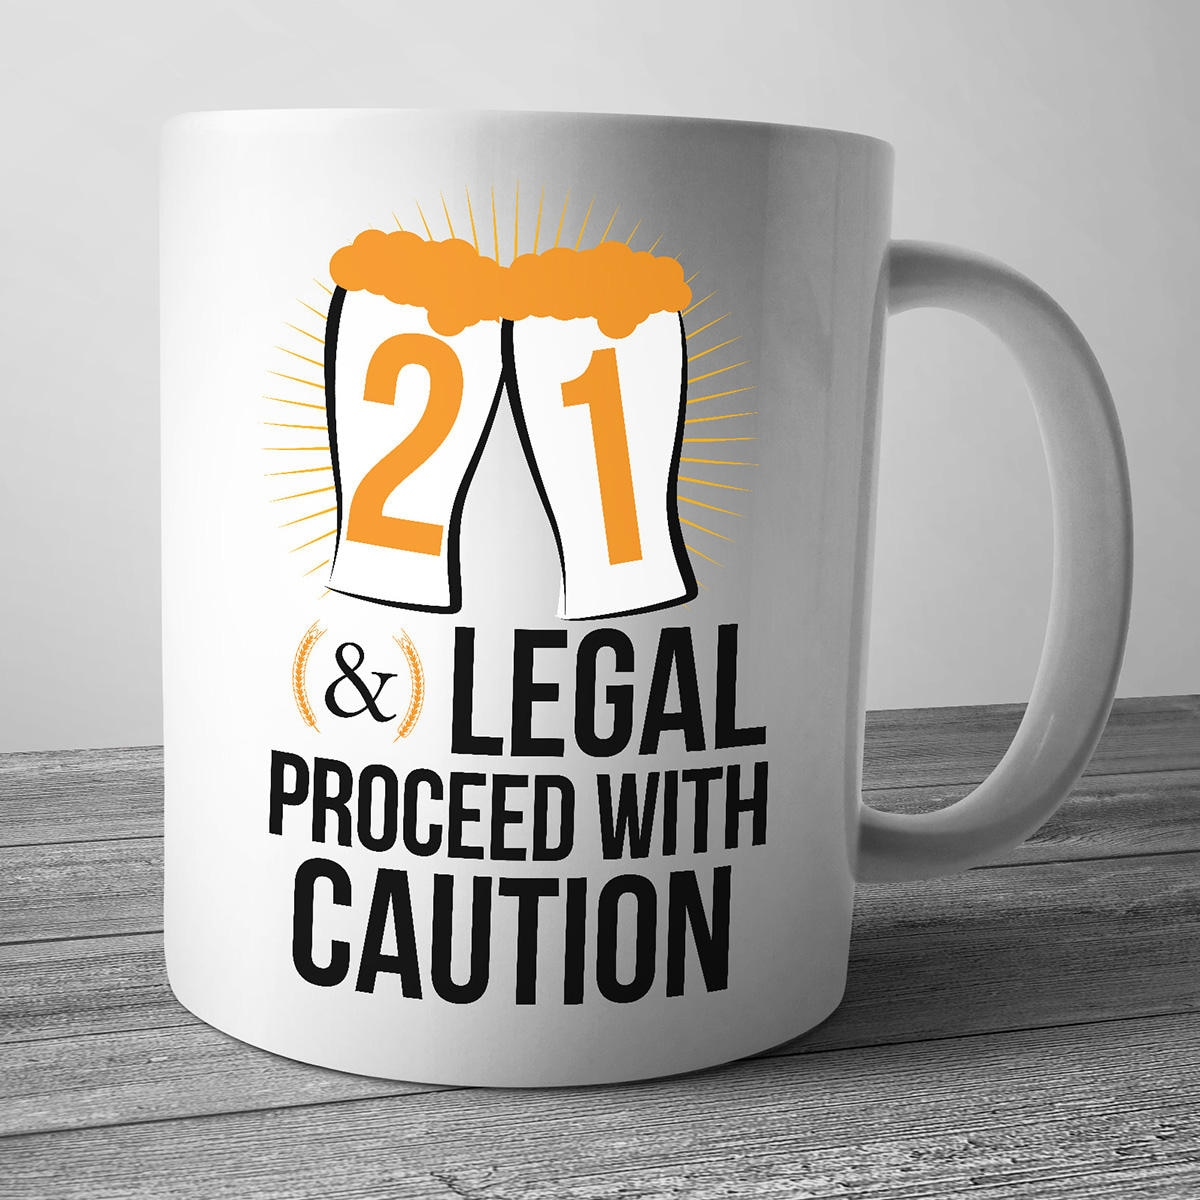 21 & Legal Proceed With Caution 21st Birthday Mug 21st